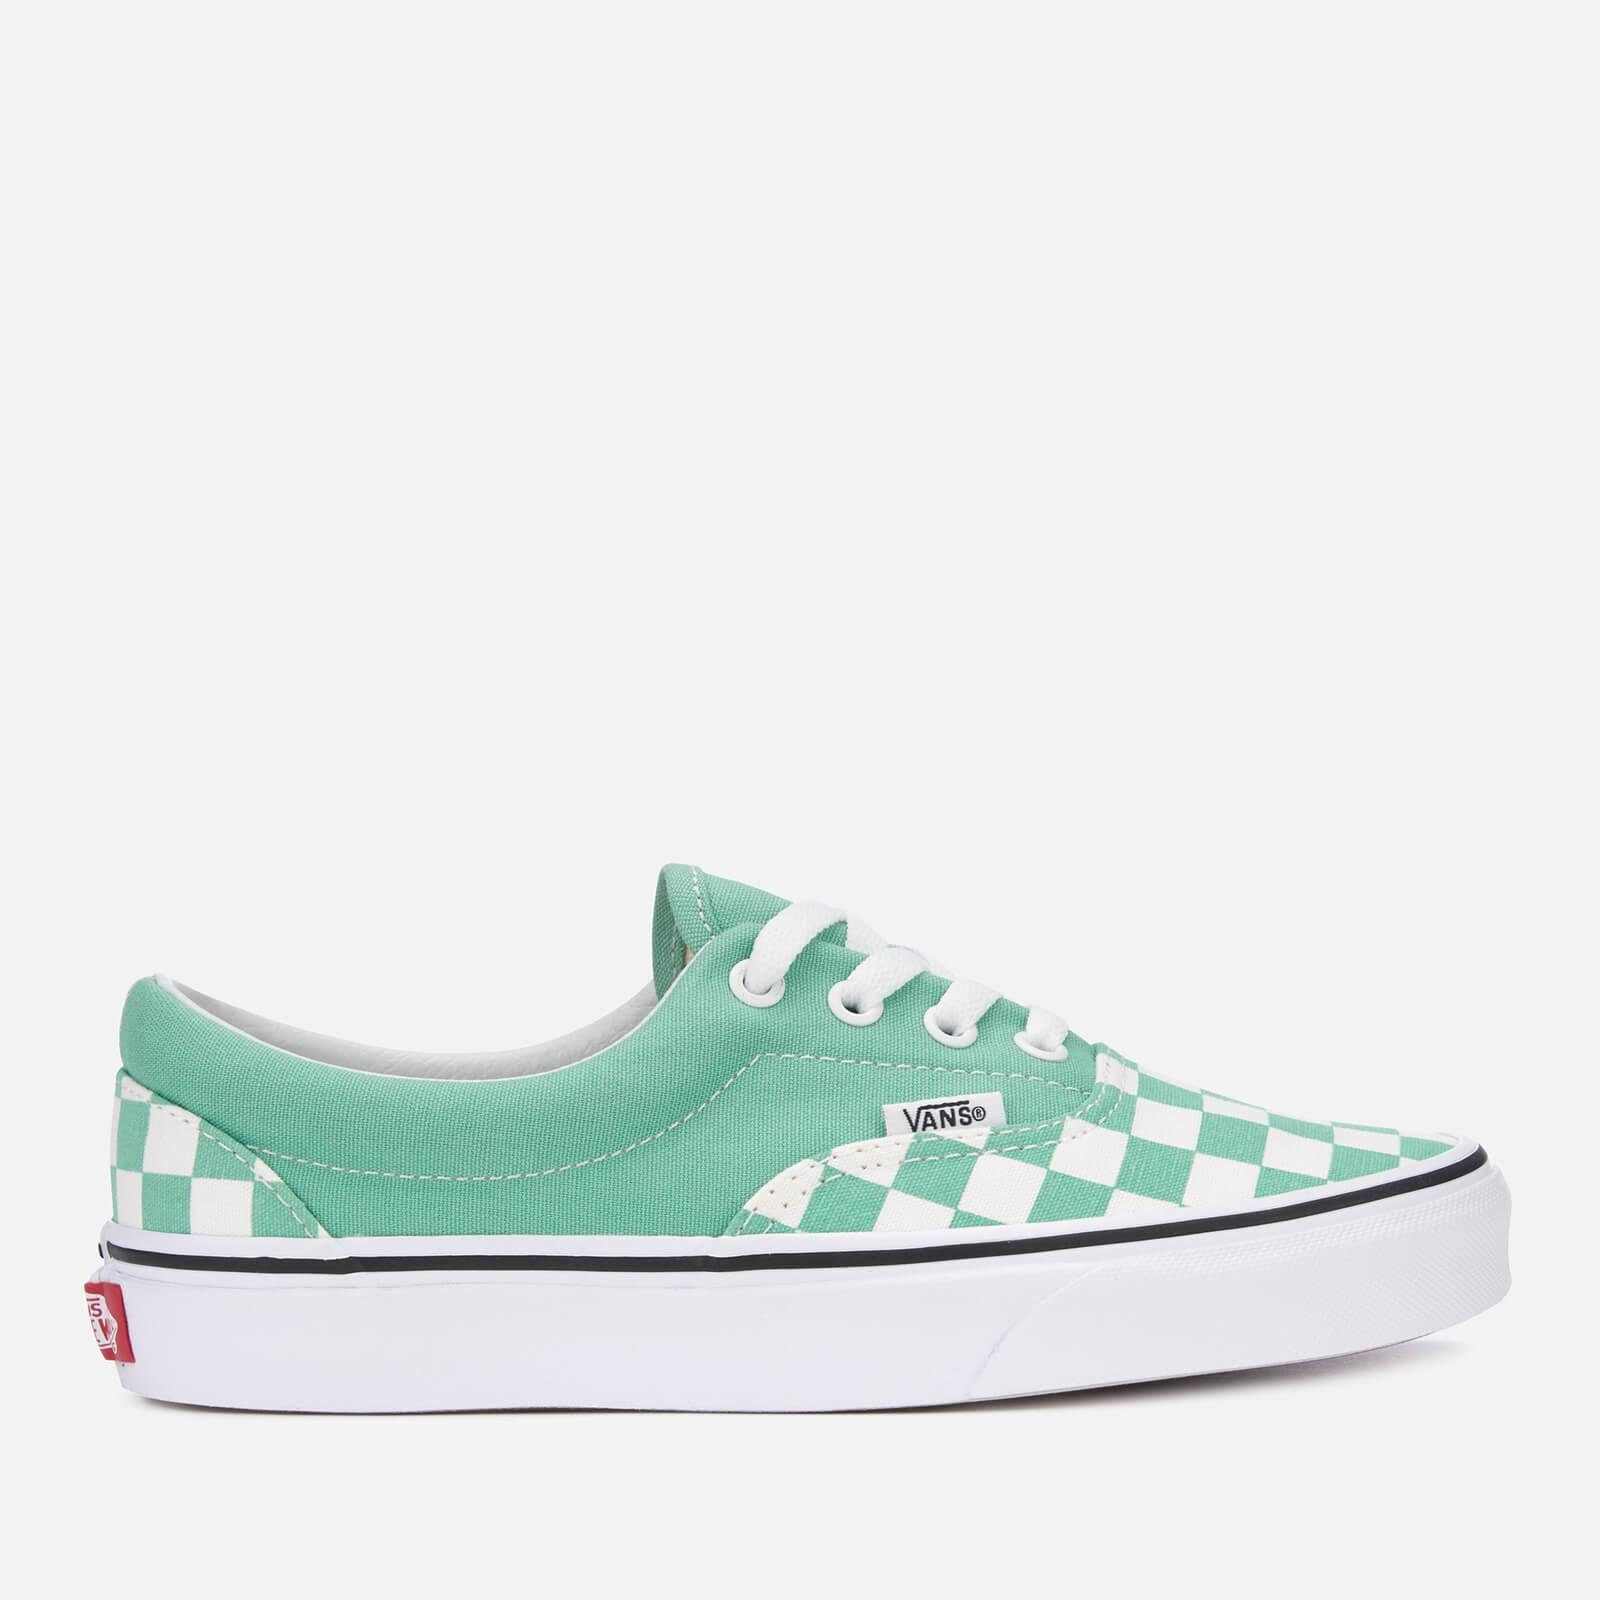 Vans Checkerboard Era Trainers in Green - Lyst 7d7e54a99